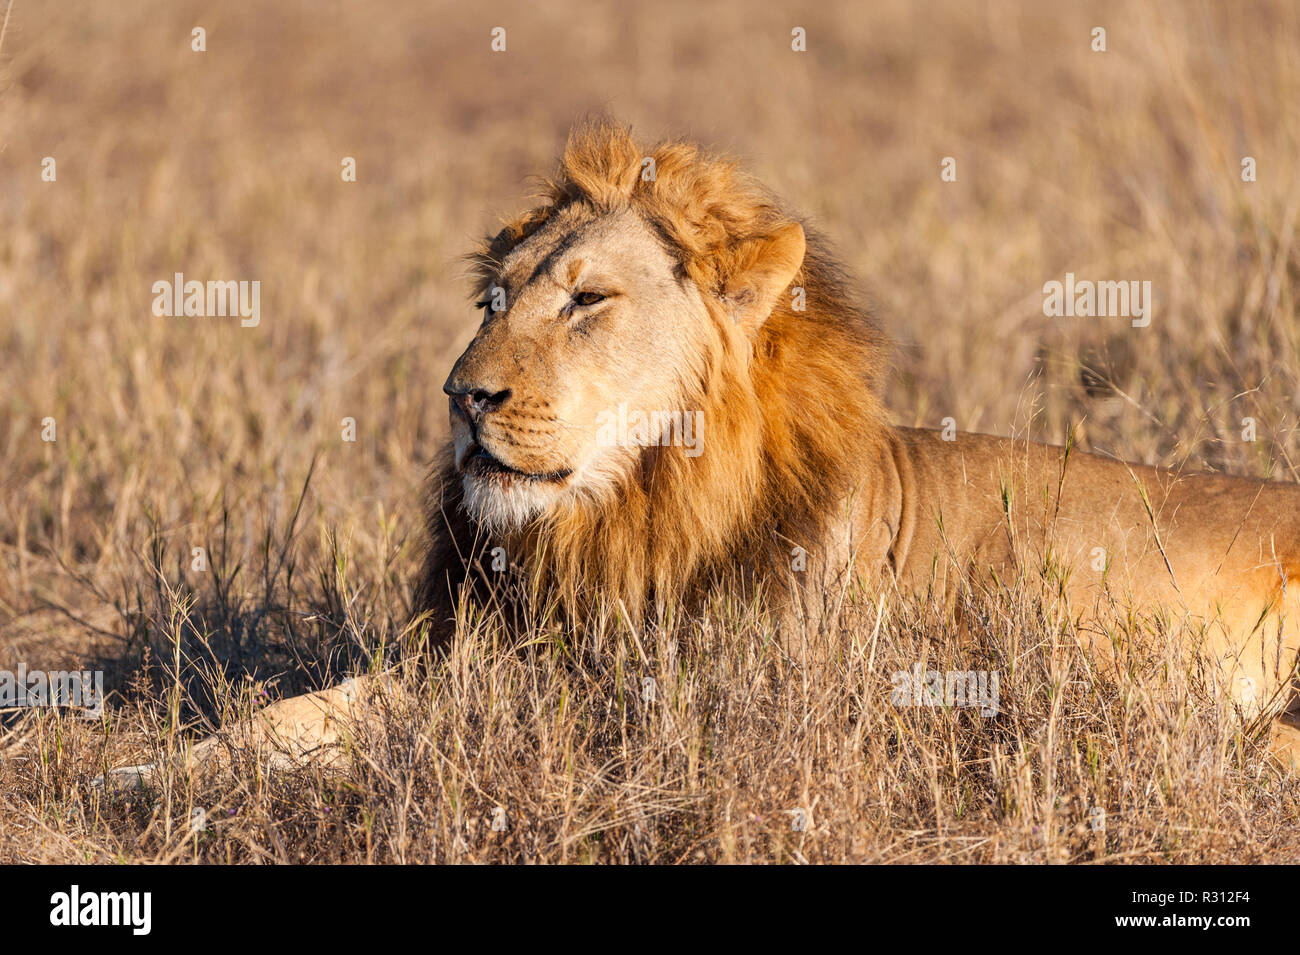 A large male lion seen in Zimbabwe's Hwange National Park. Stock Photo